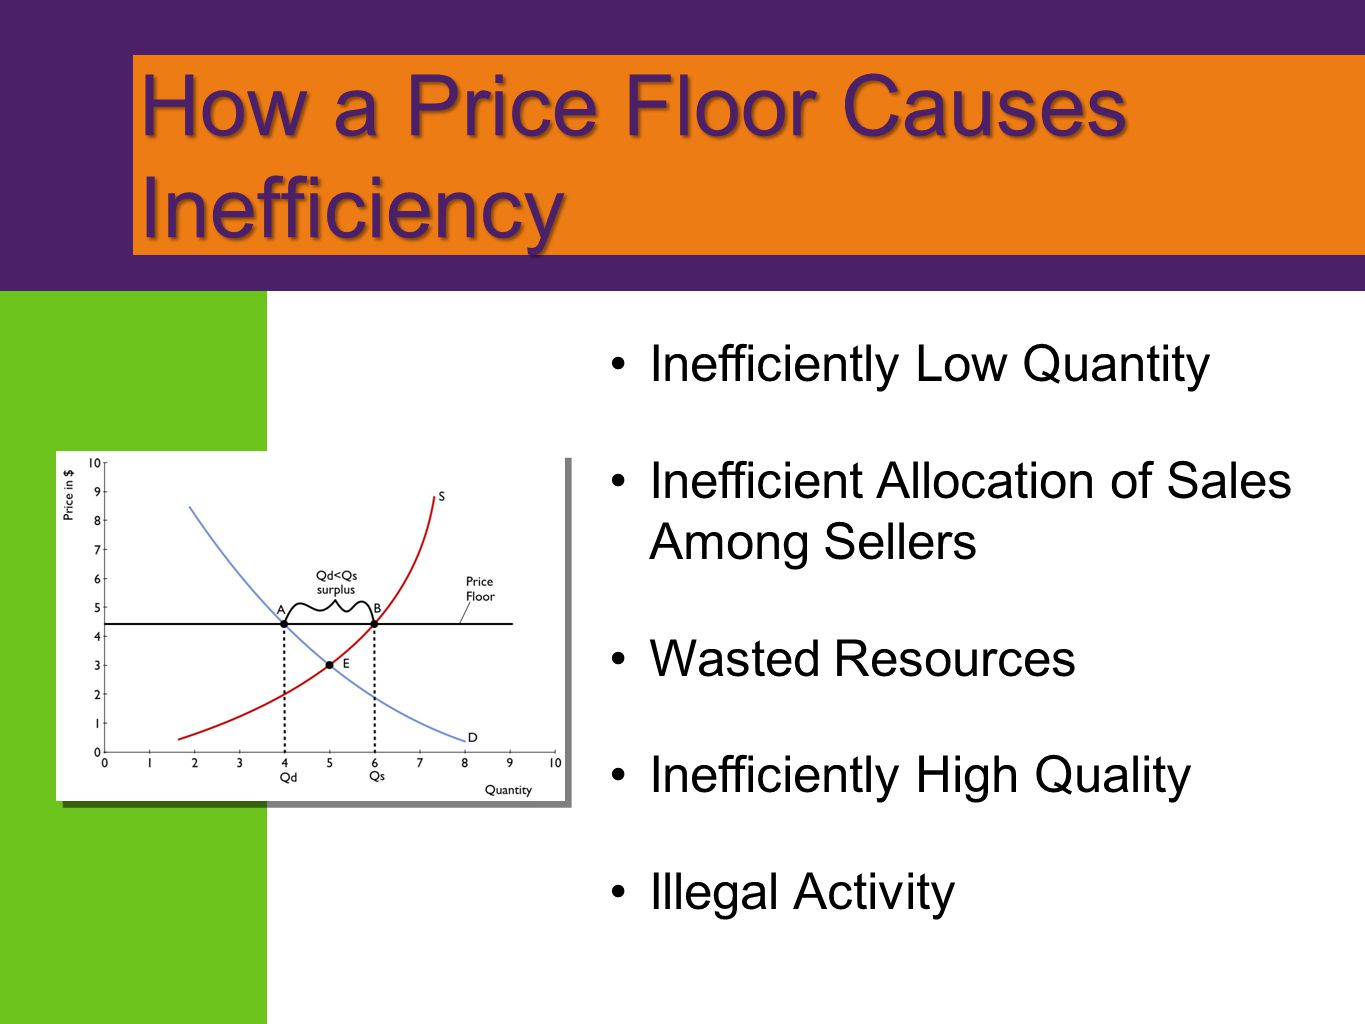 How a Price Floor Causes Inefficiency